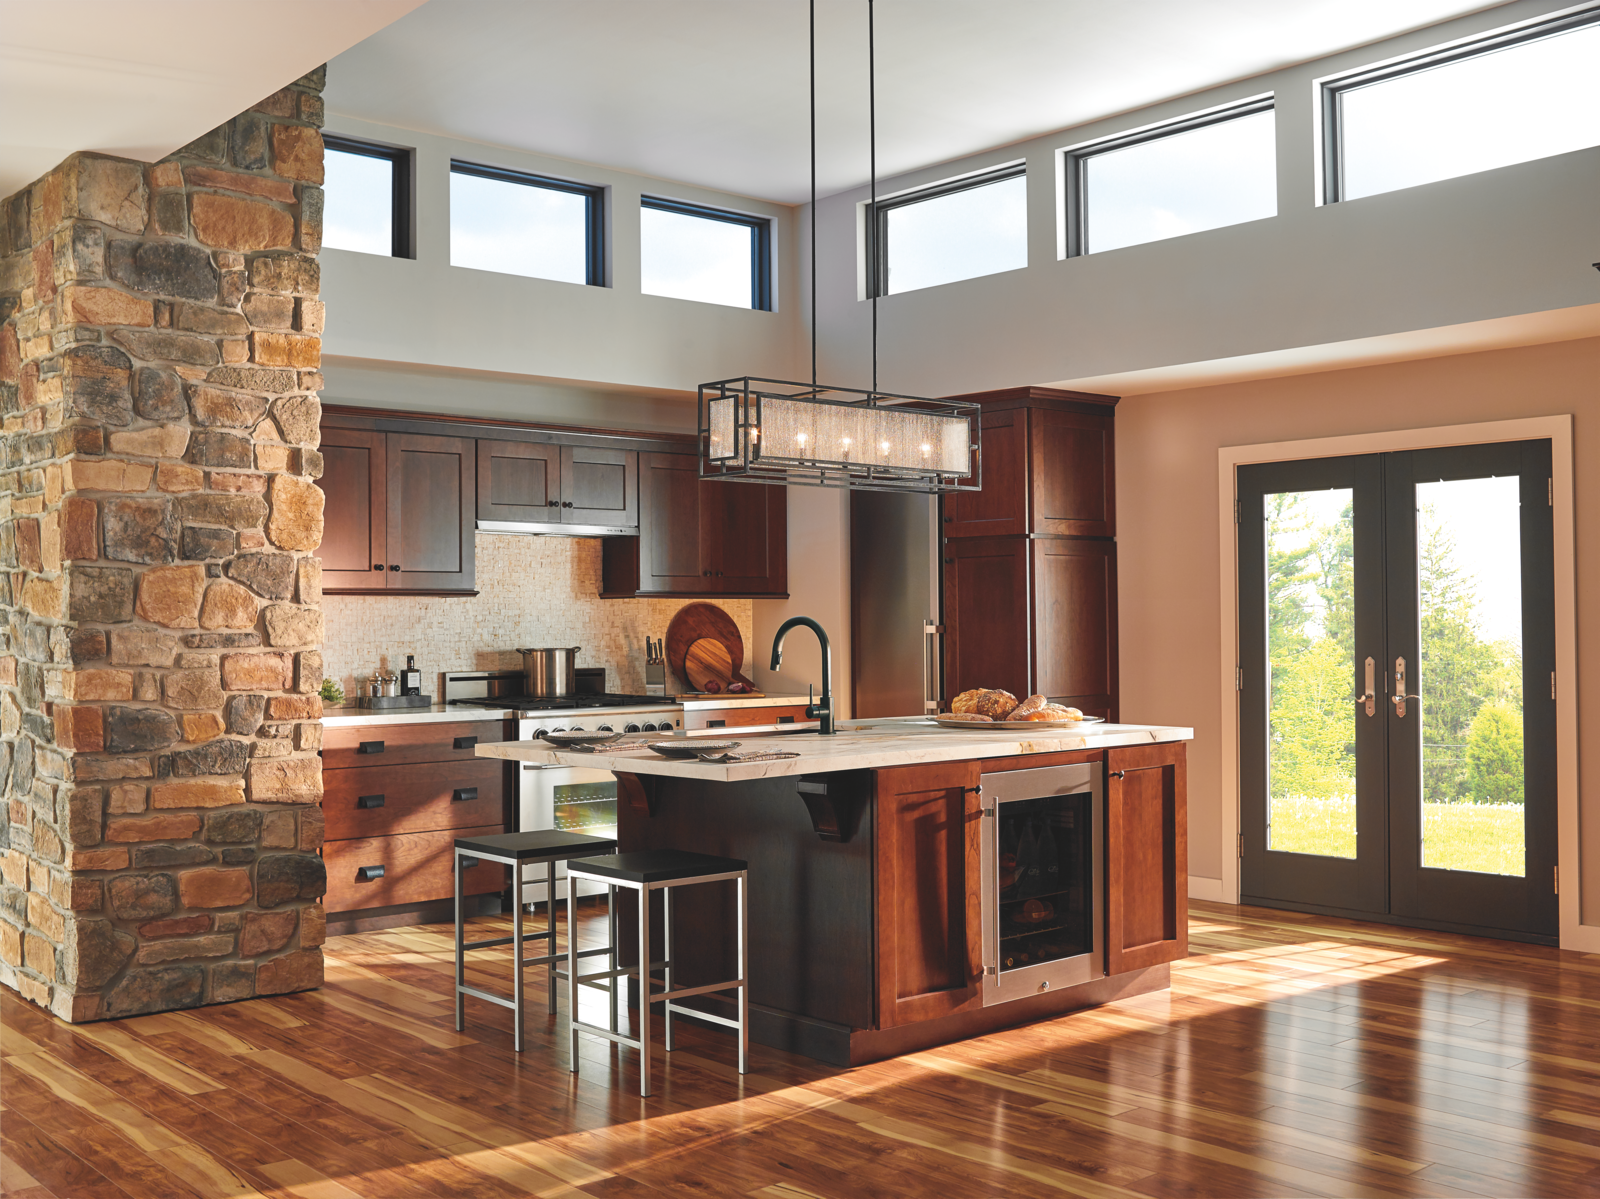 Photo 8 of 8 in 8 Ways to Refresh and Personalize Your Kitchen